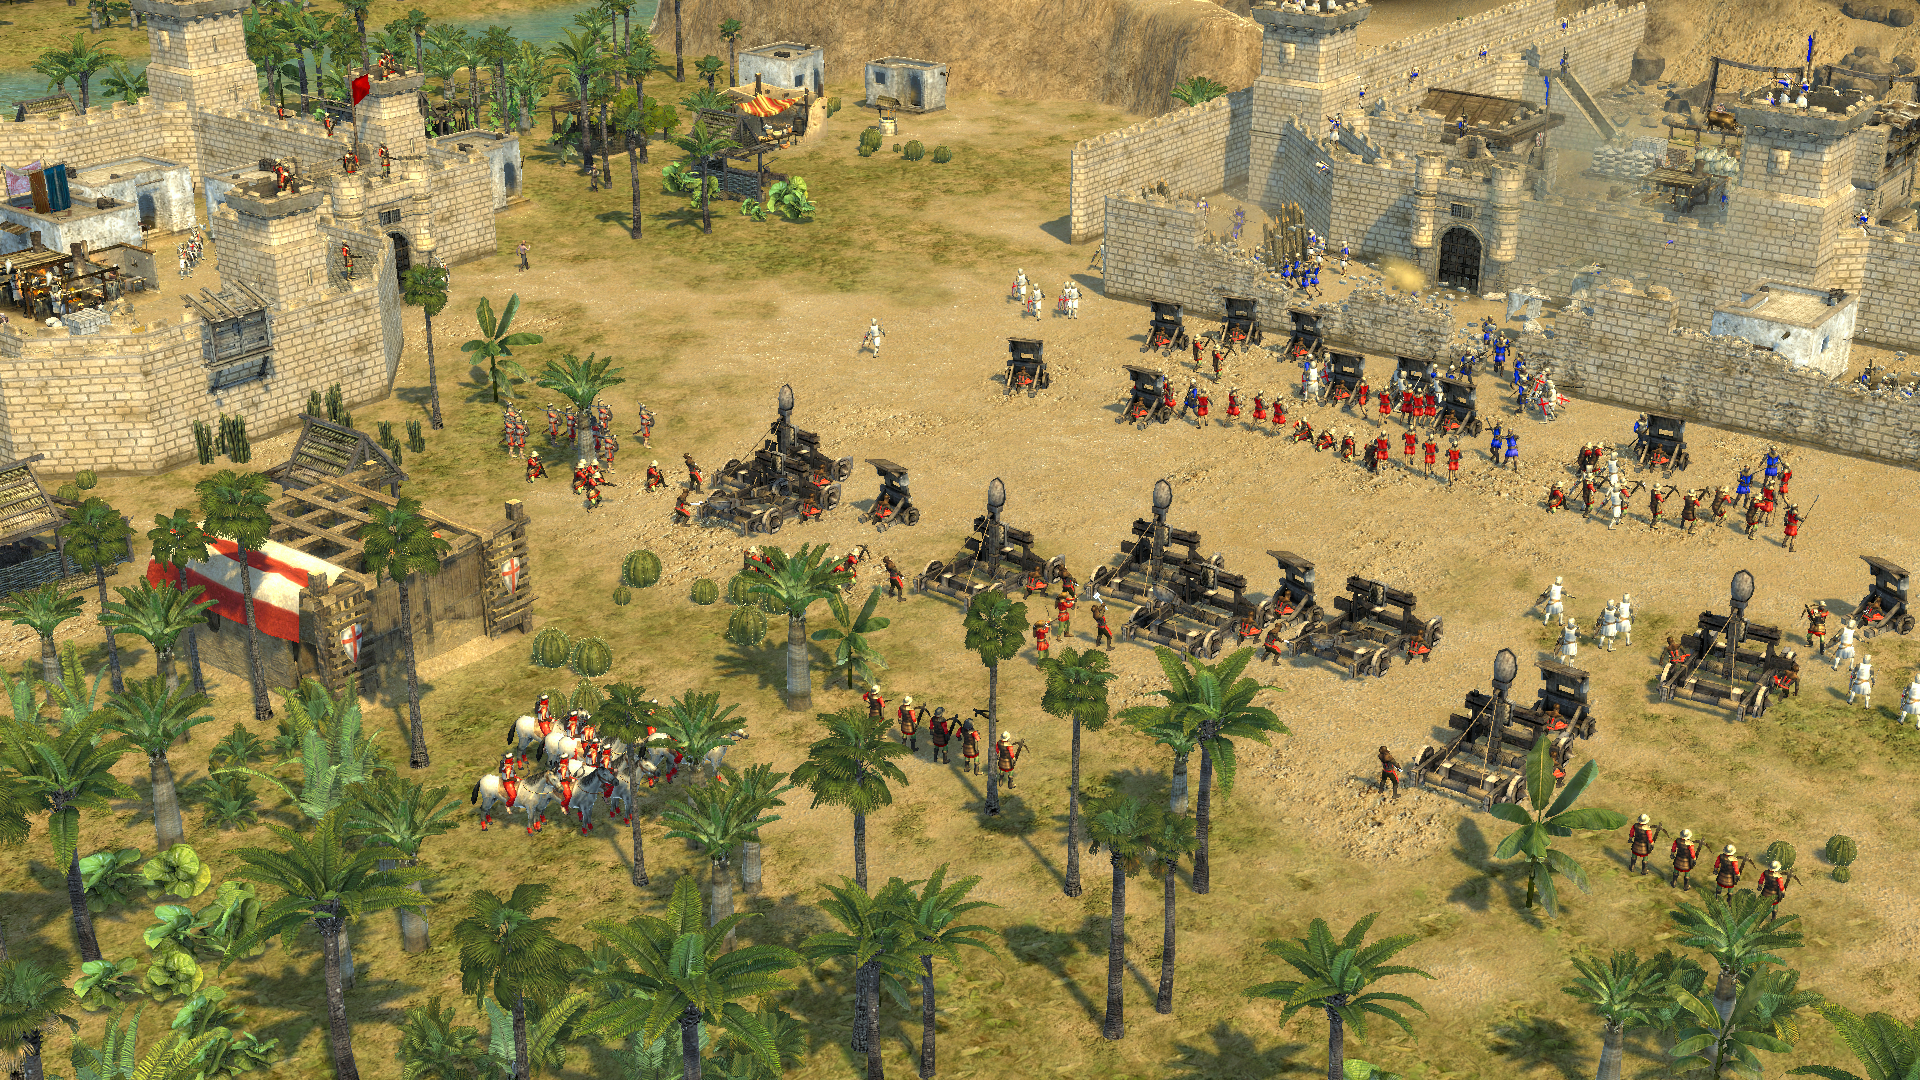 Stronghold Crusader II Special Edition Multilenguaje ESPAÑOL PC (PLAZA) + Update v1.0.19369 (FLTDOX) 6